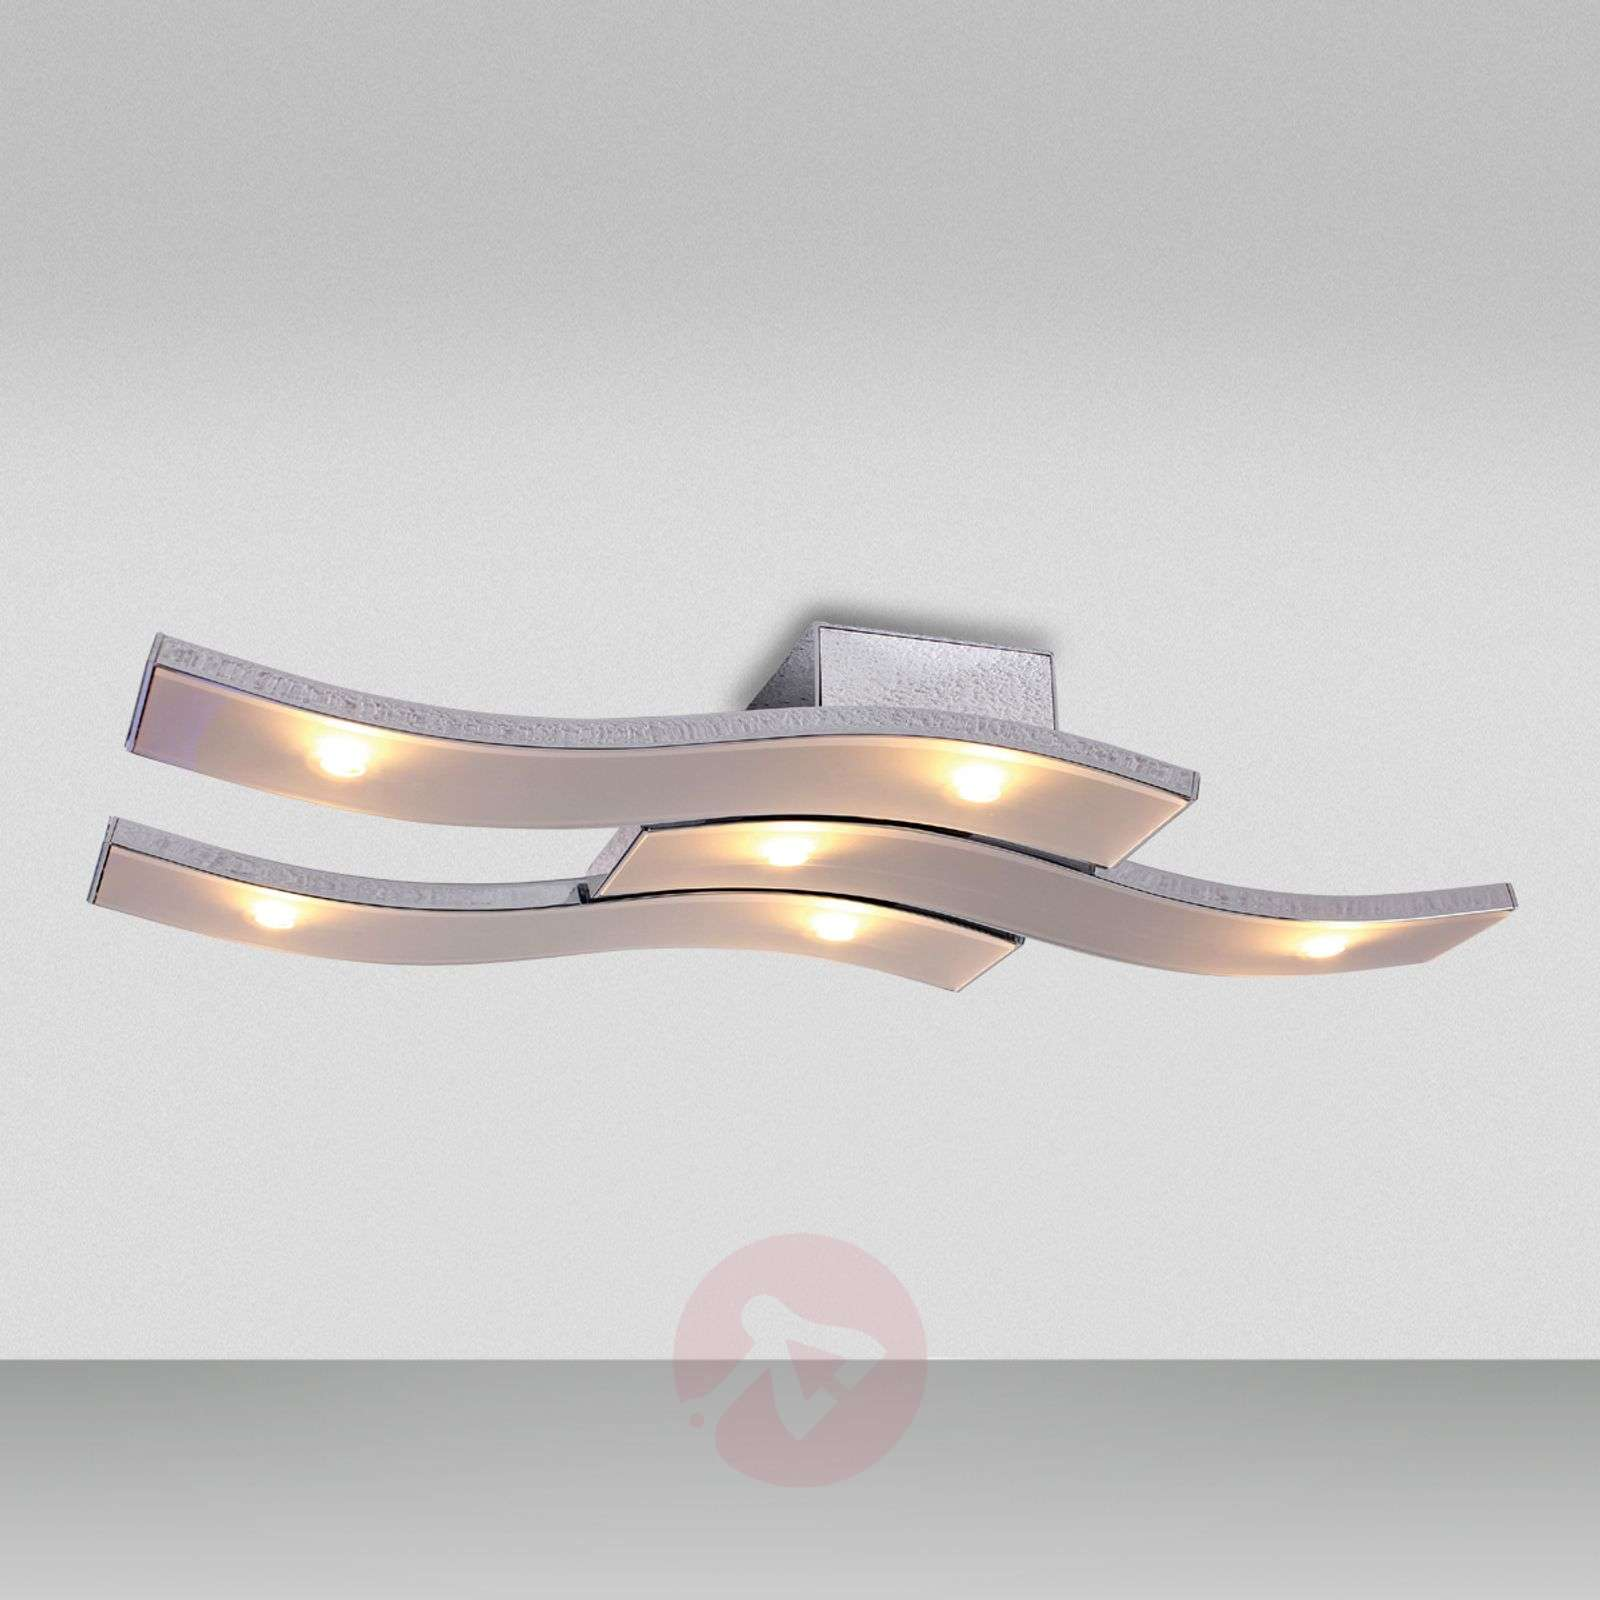 Cascade controllable LED ceiling light-1556011-01